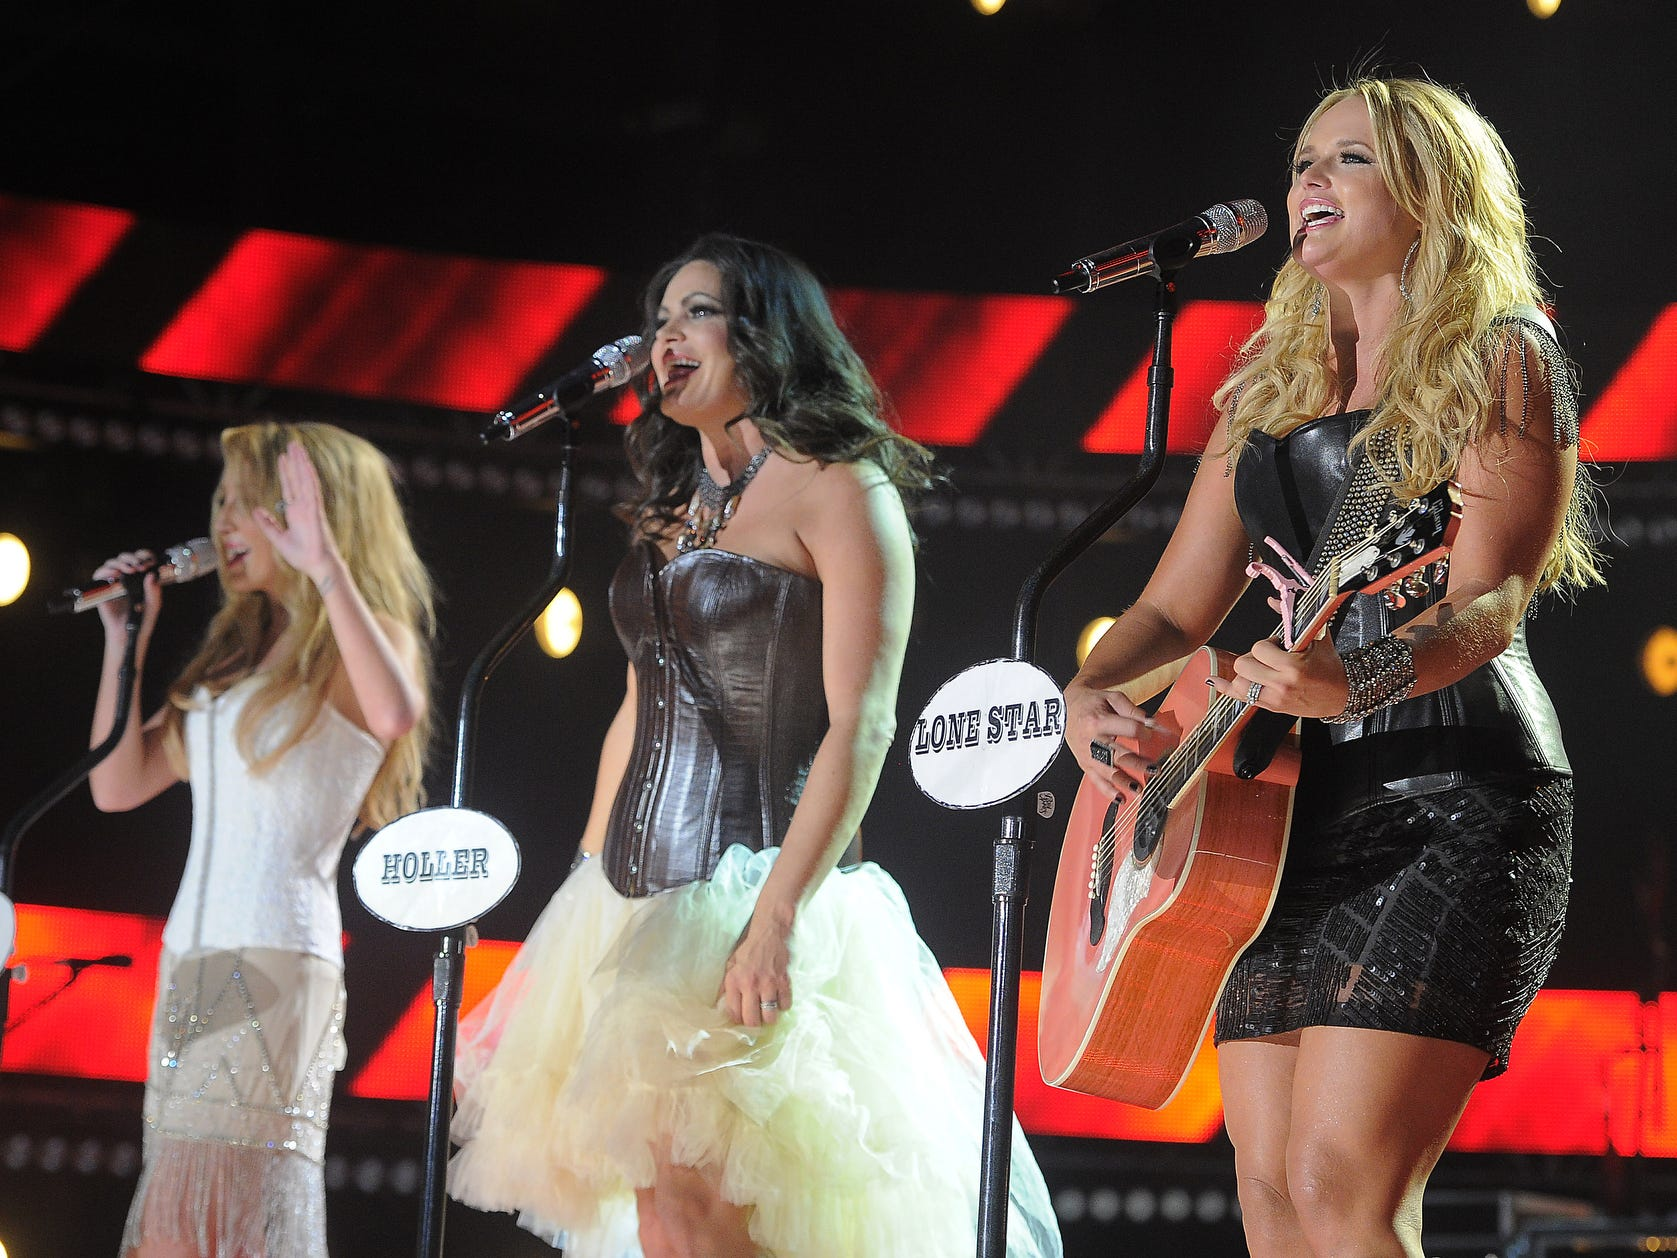 The Pistol Annies are scheduled to play Nissan Stadium during CMA Fest 2019.